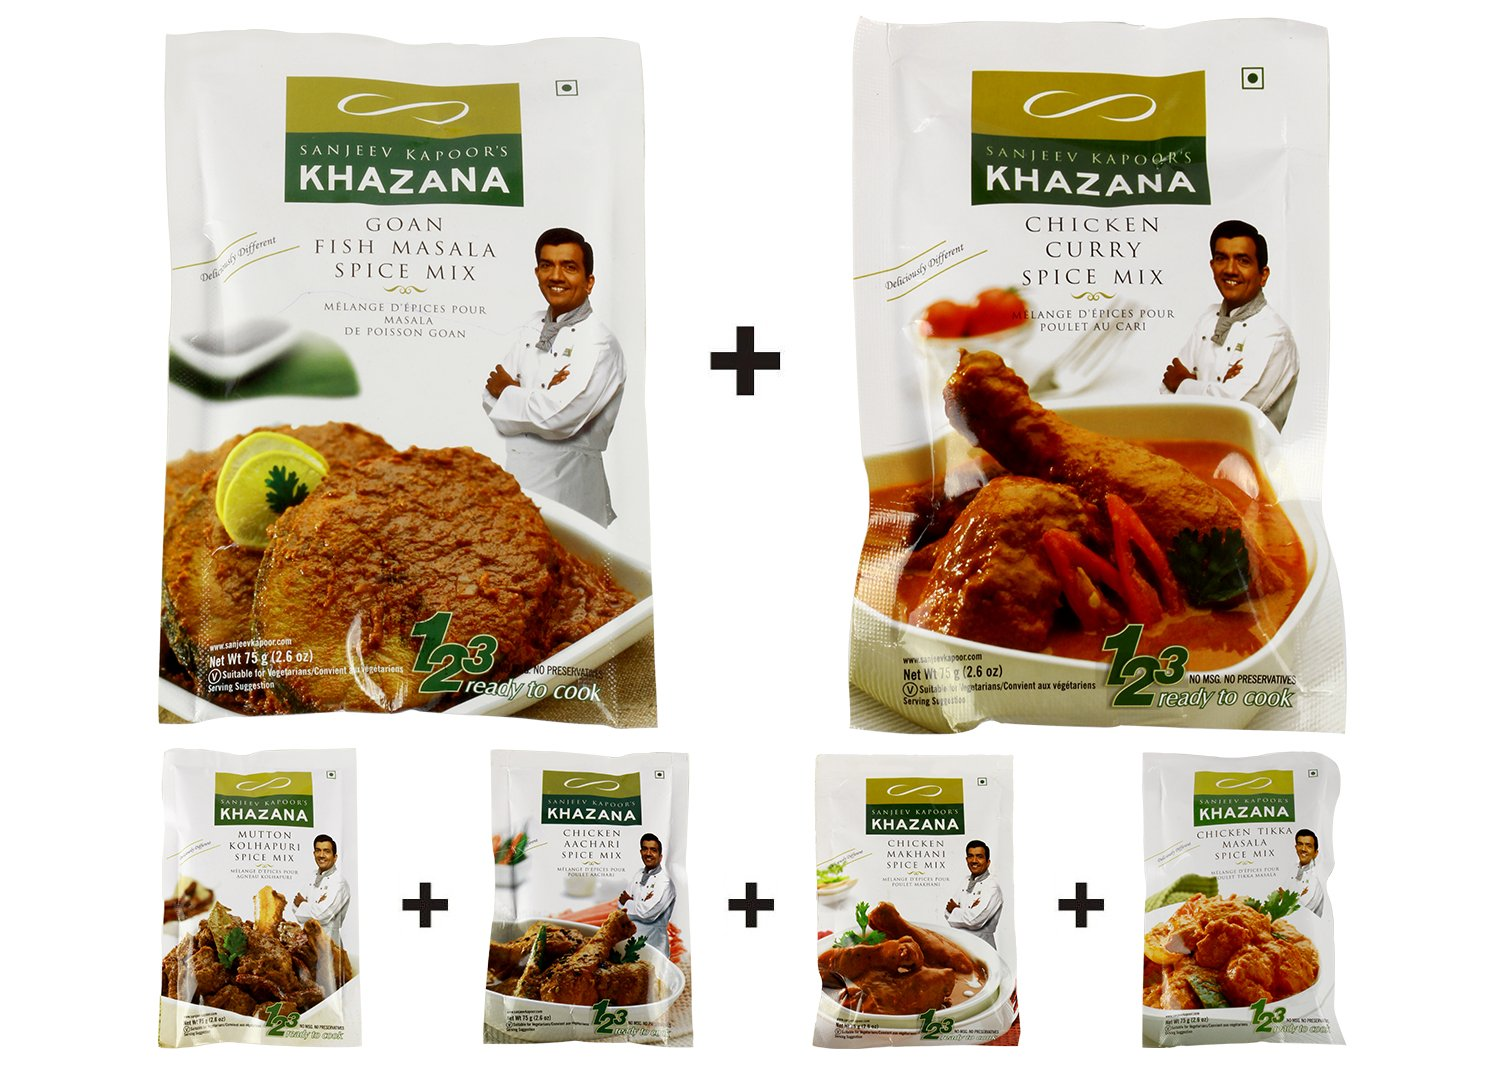 Chef Sanjeev Kapoor Khana Khazana Rtc Non Veg Pack Of 6 Amazon In Grocery Gourmet Foods